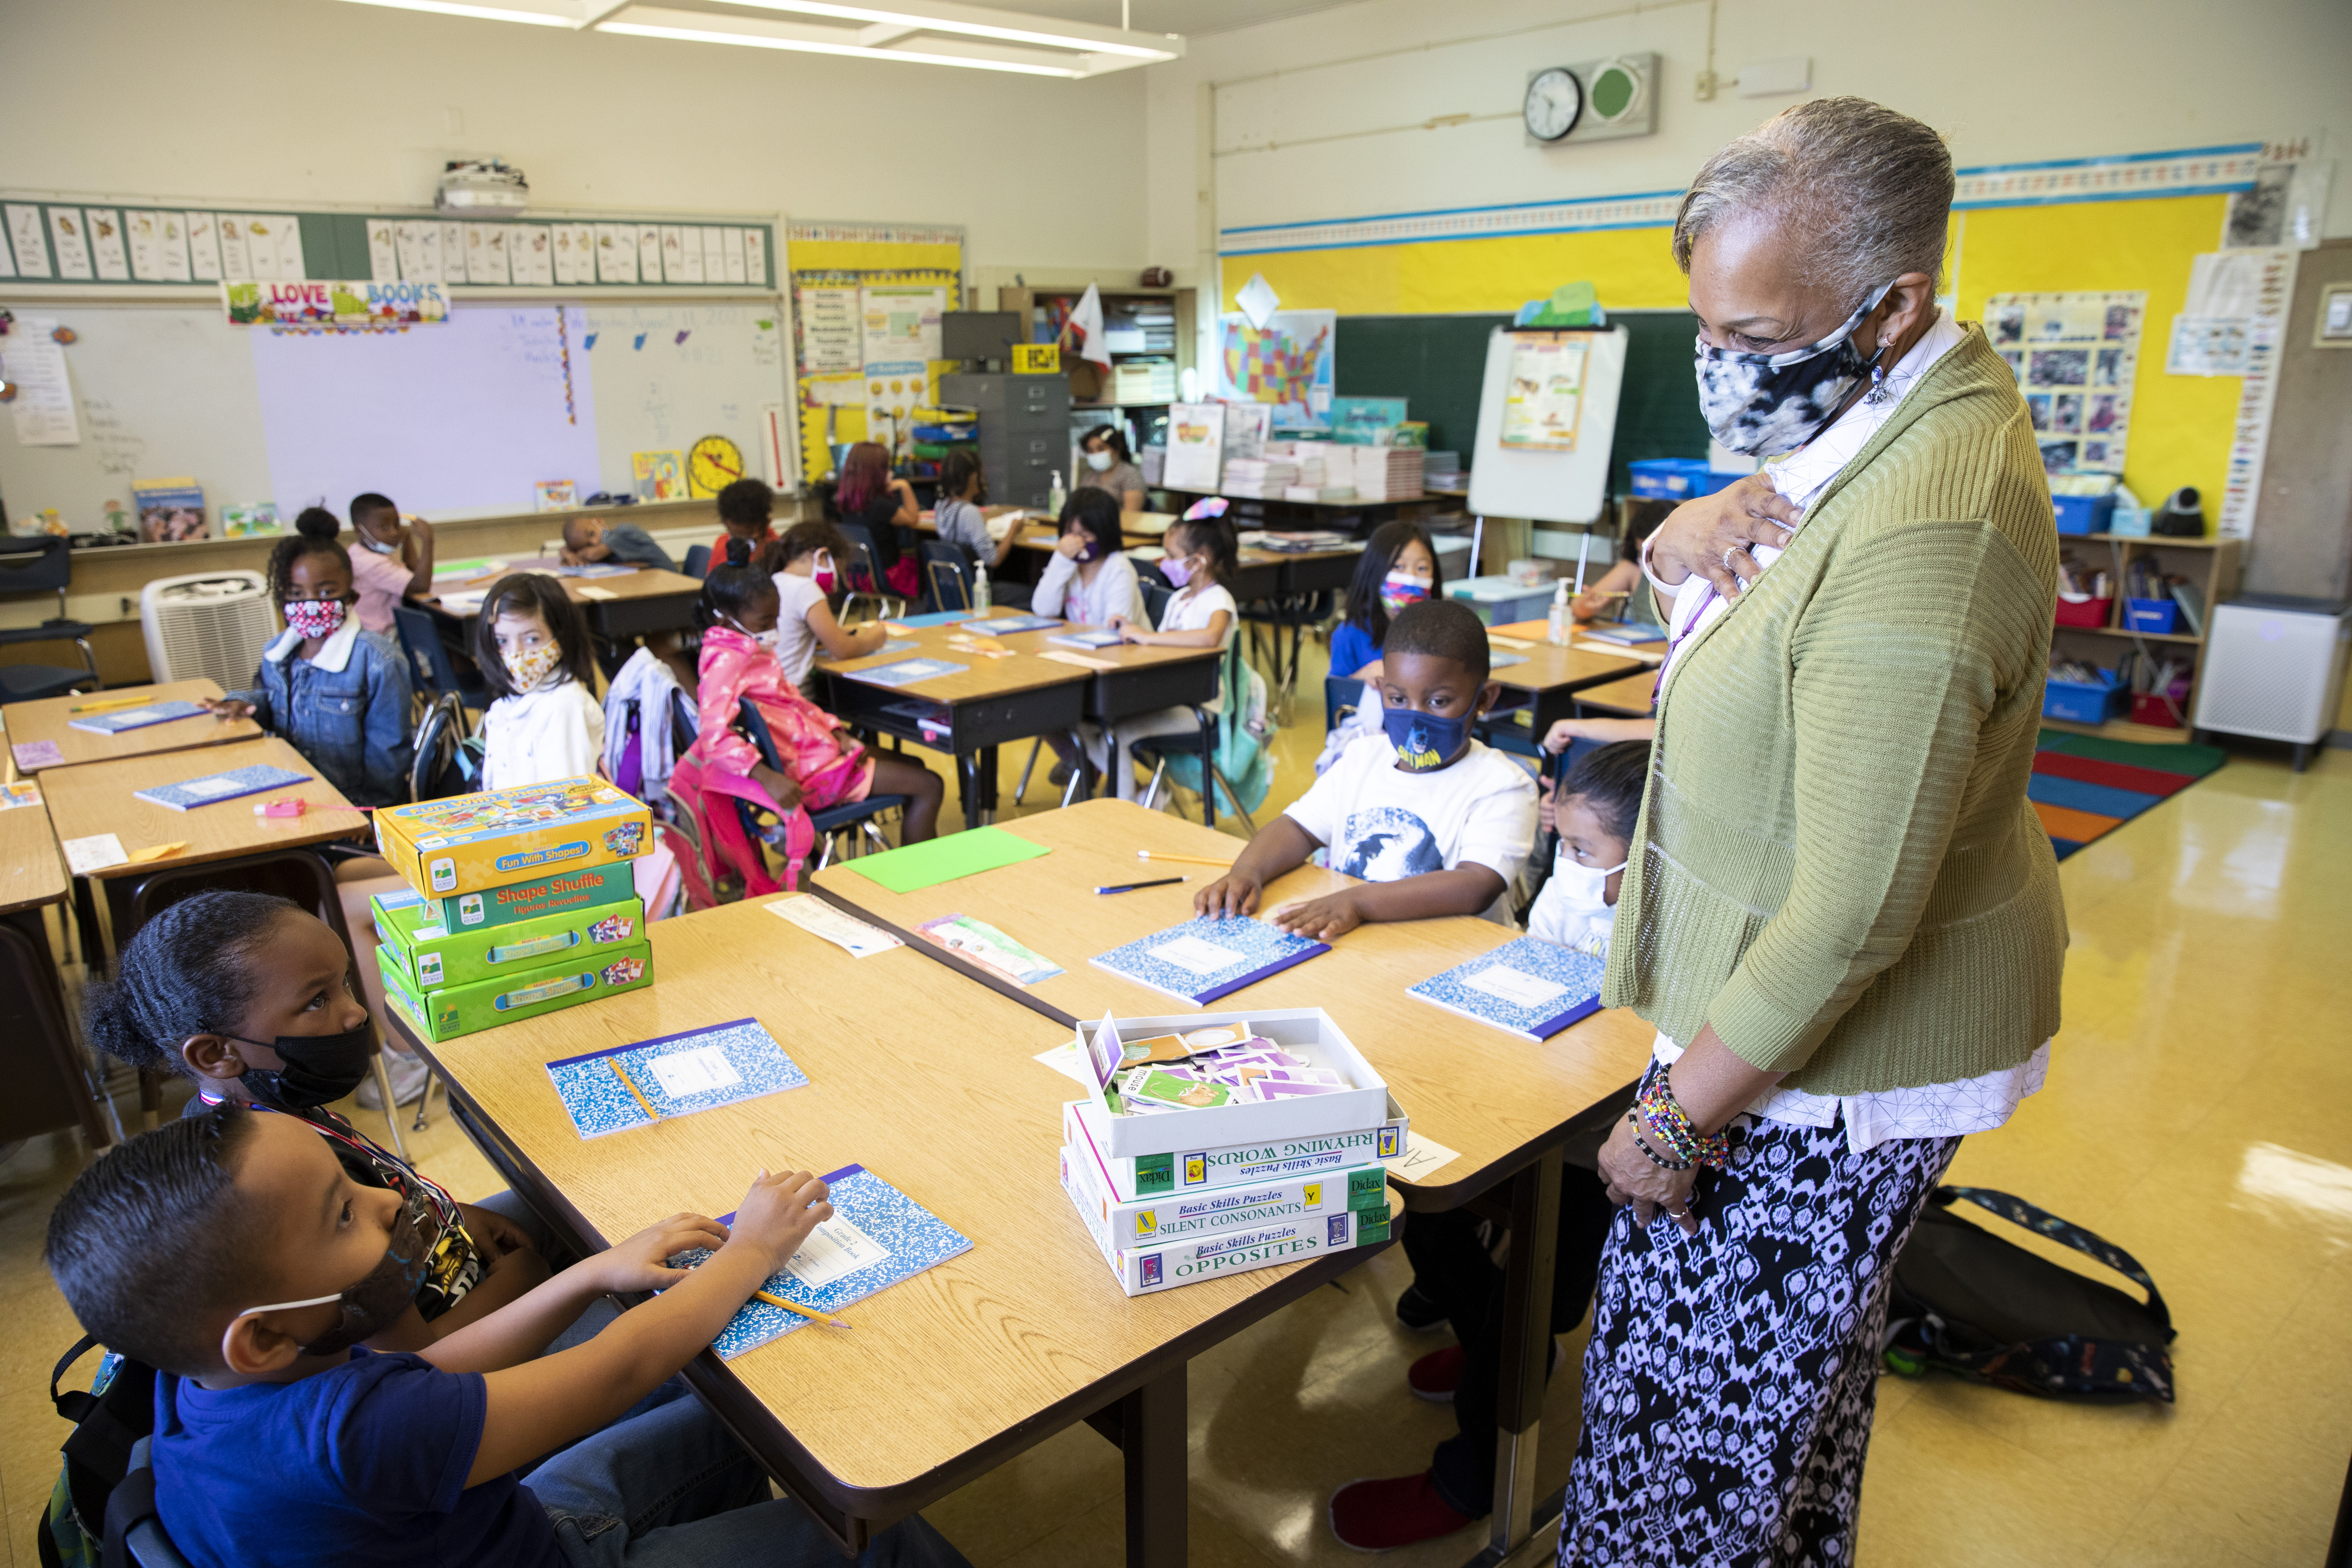 An older female elementary teacher gestures at a table of young students in her full classroom, all of them wearing masks due to COVID protocols.